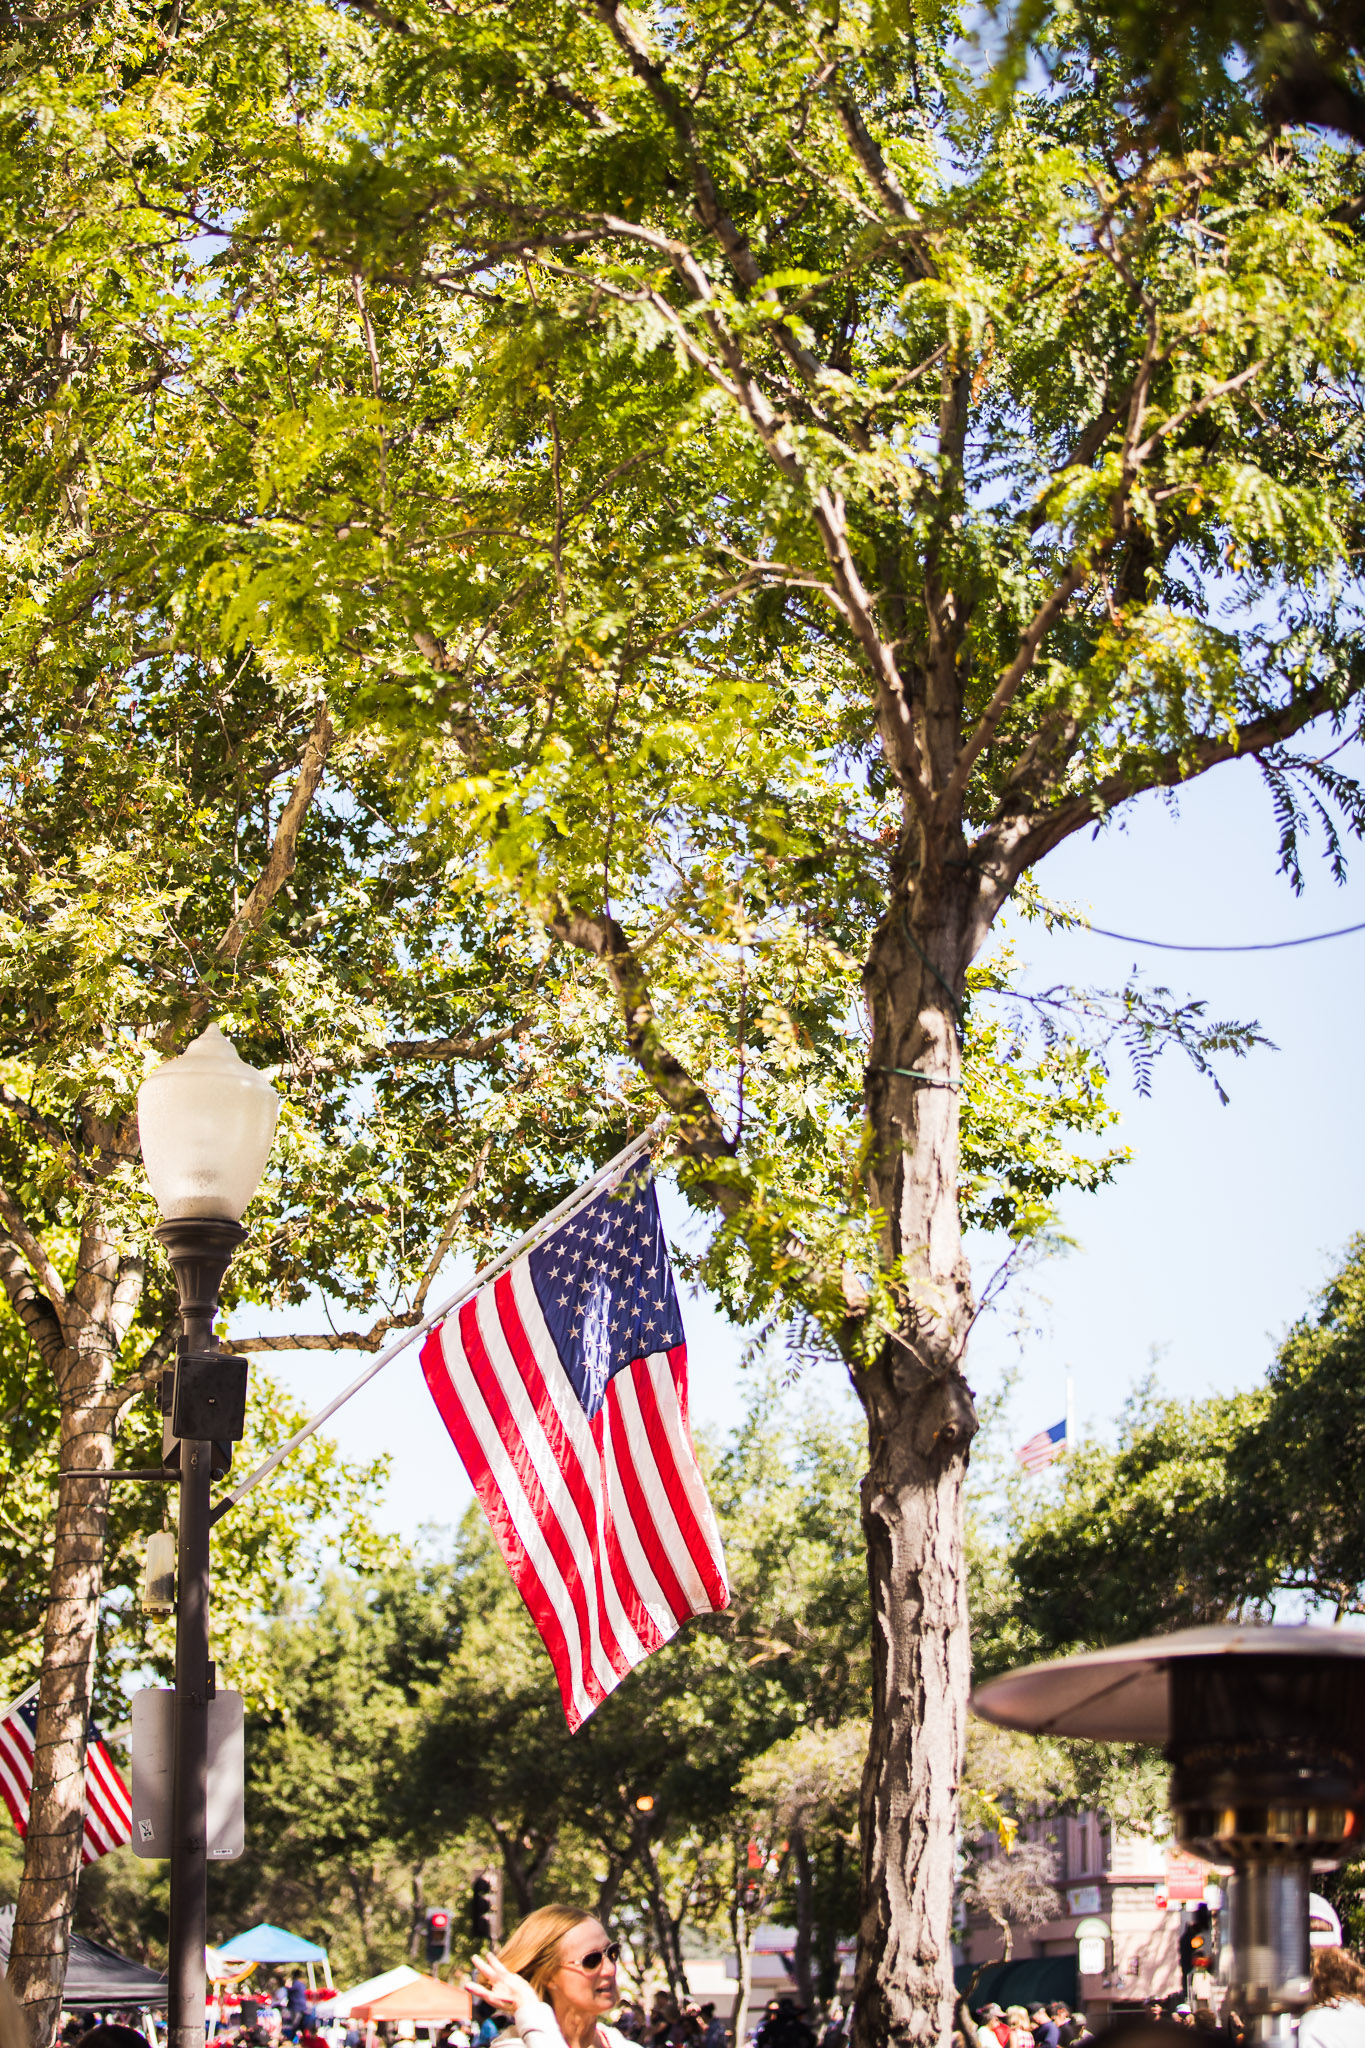 Archer_Inspired_Photography_Morgan_Hill_California_4th_of_july_parade-34.jpg